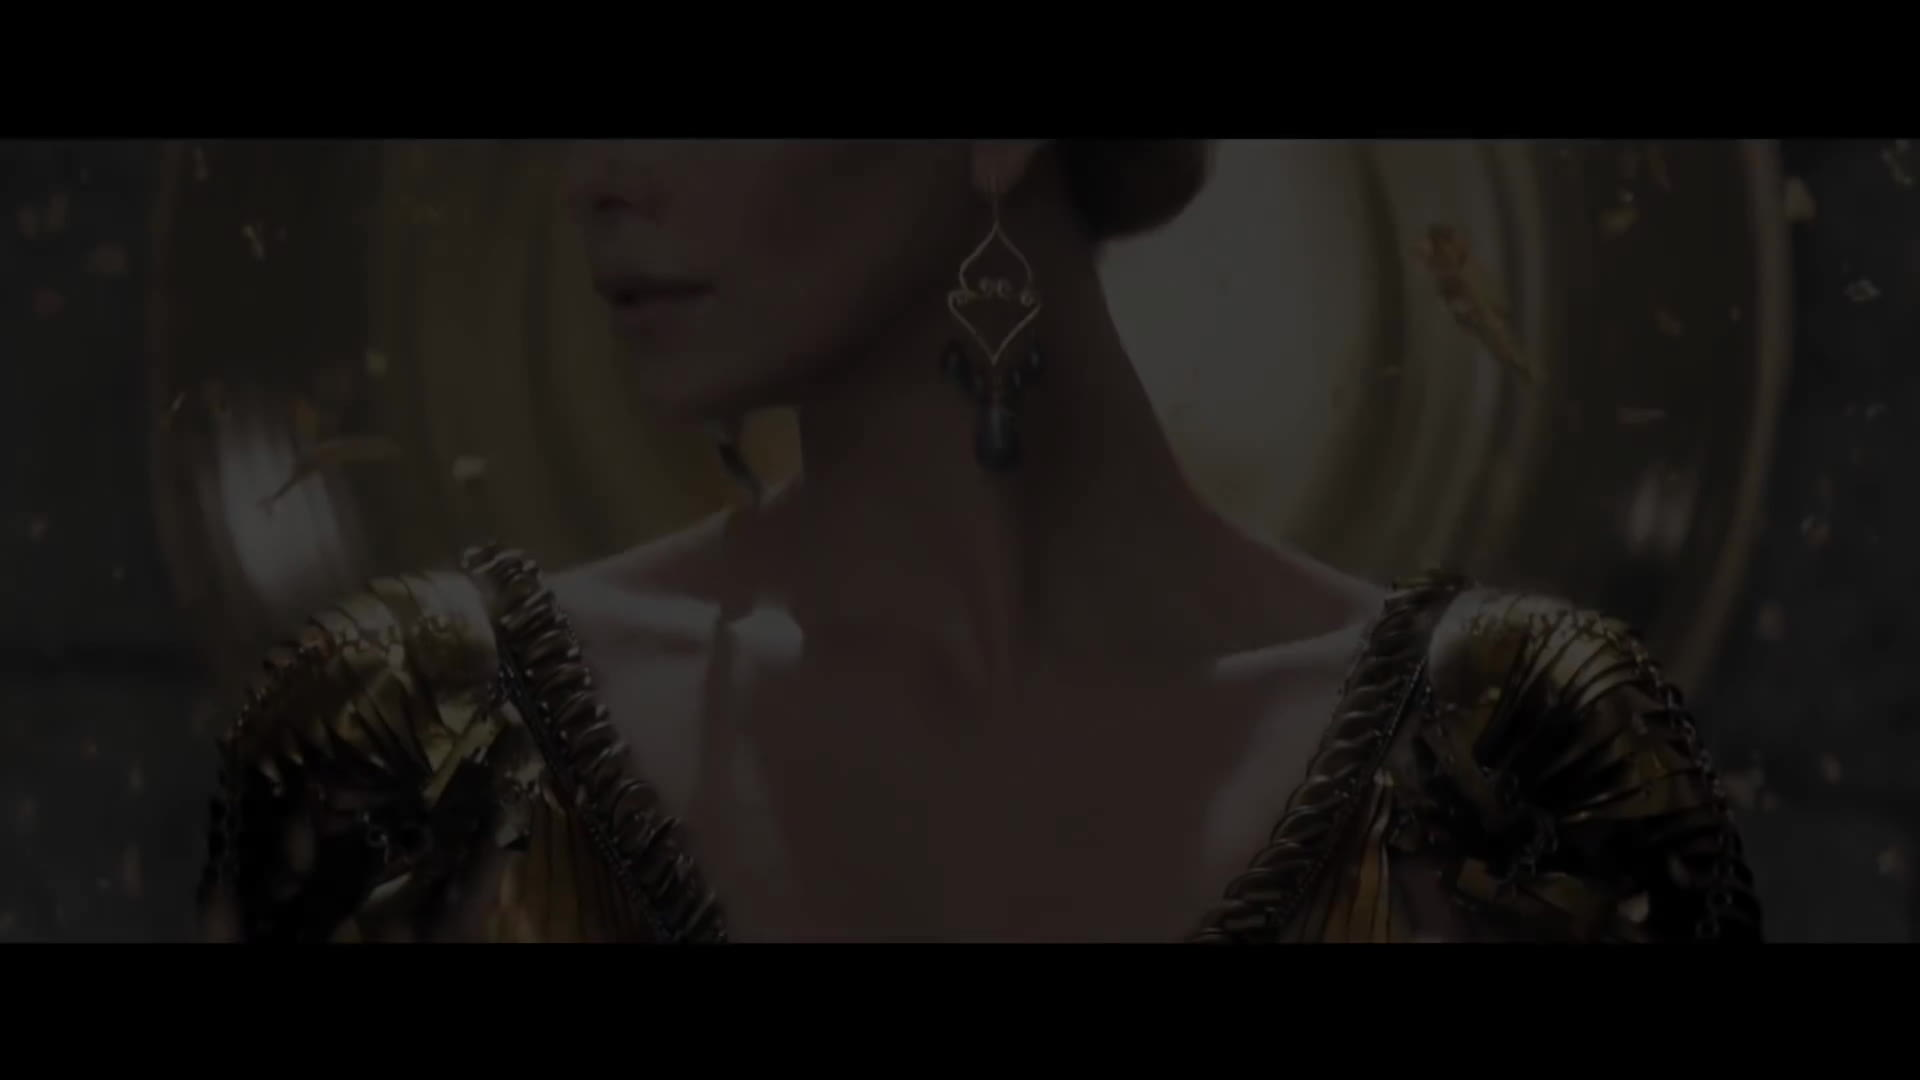 charlize theron, movie clips, movieclips, movieclipstrailers, The Huntsman: Winter's War Official Trailer #1 (2016) - Chris Hemsworth, Charlize Theron Drama HD GIFs